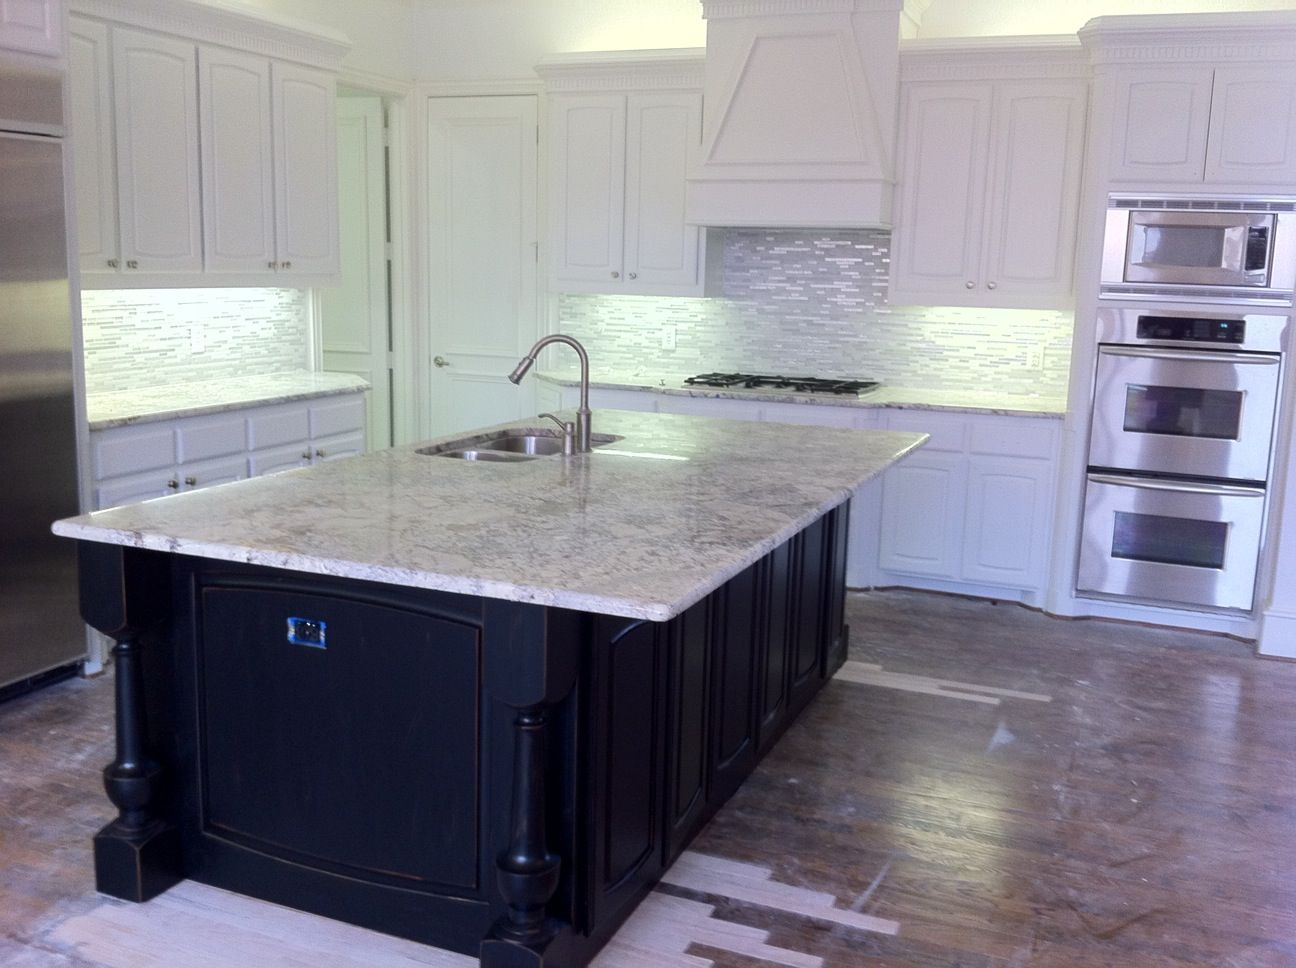 Black Marble Kitchen Countertops Carrera Marble Countertop With Black Cabinets Carrera Marble